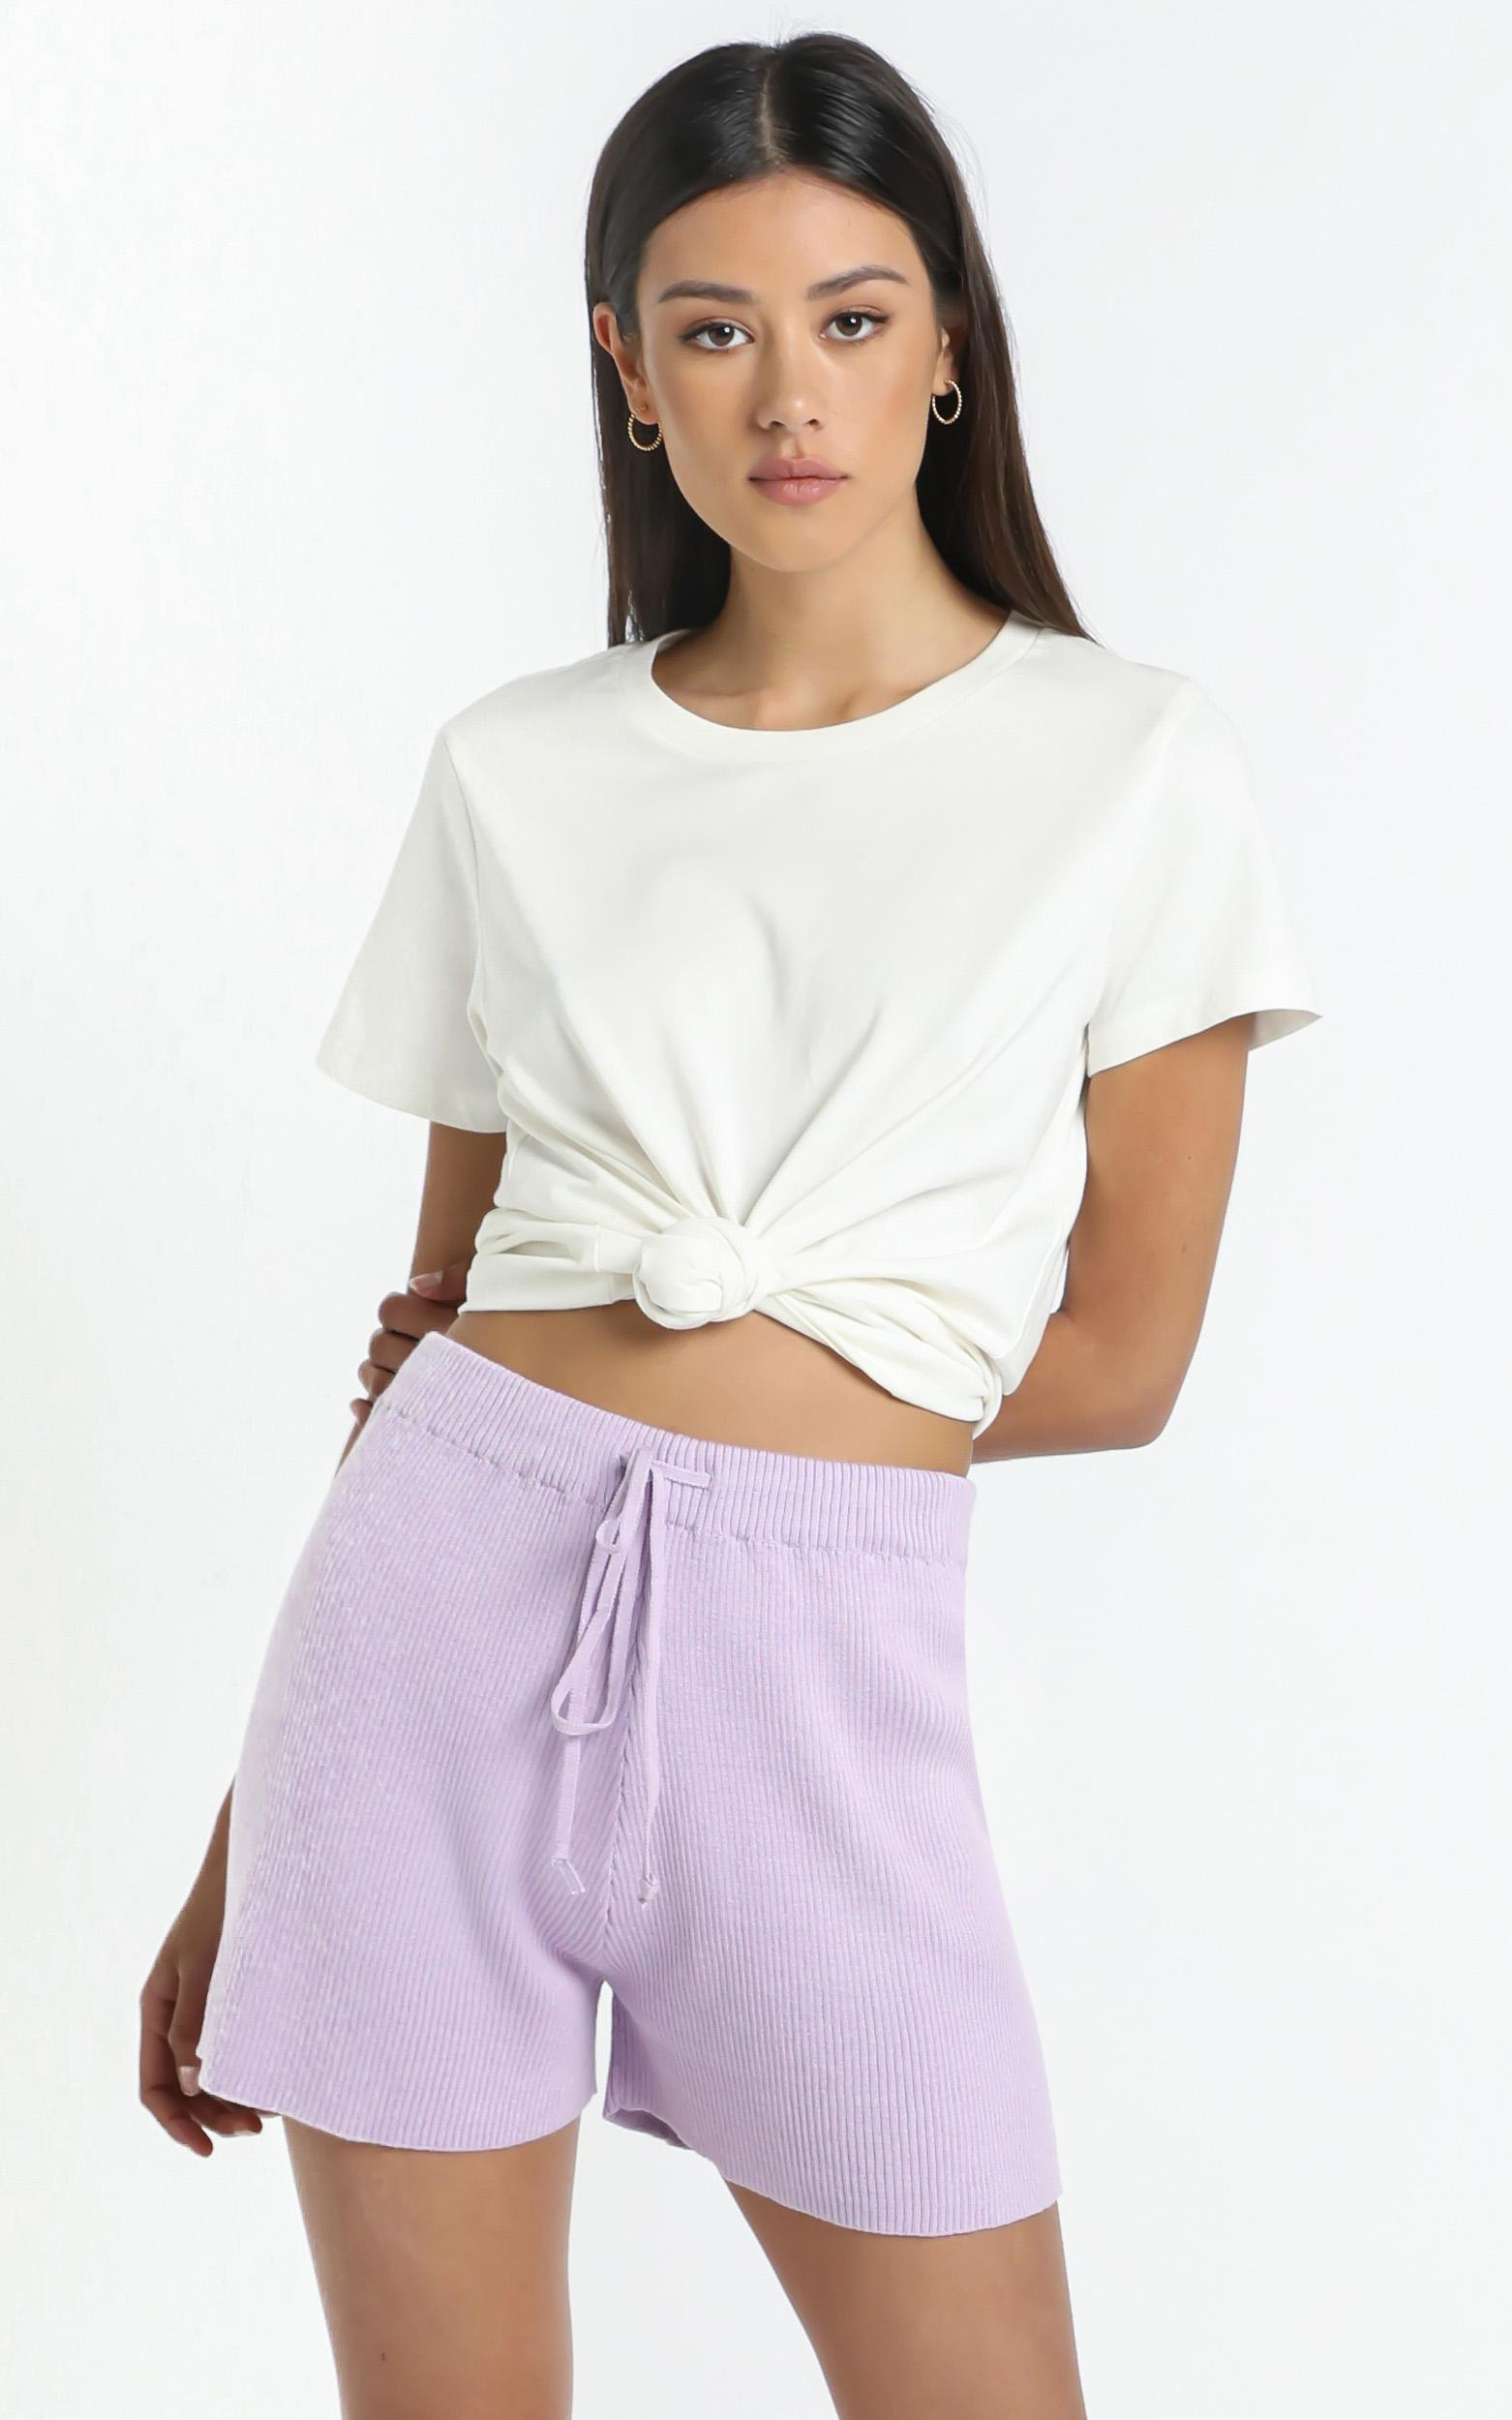 Lullaby Club - Alex Knit Shorts in Periwinkle - L/XL, Purple, hi-res image number null